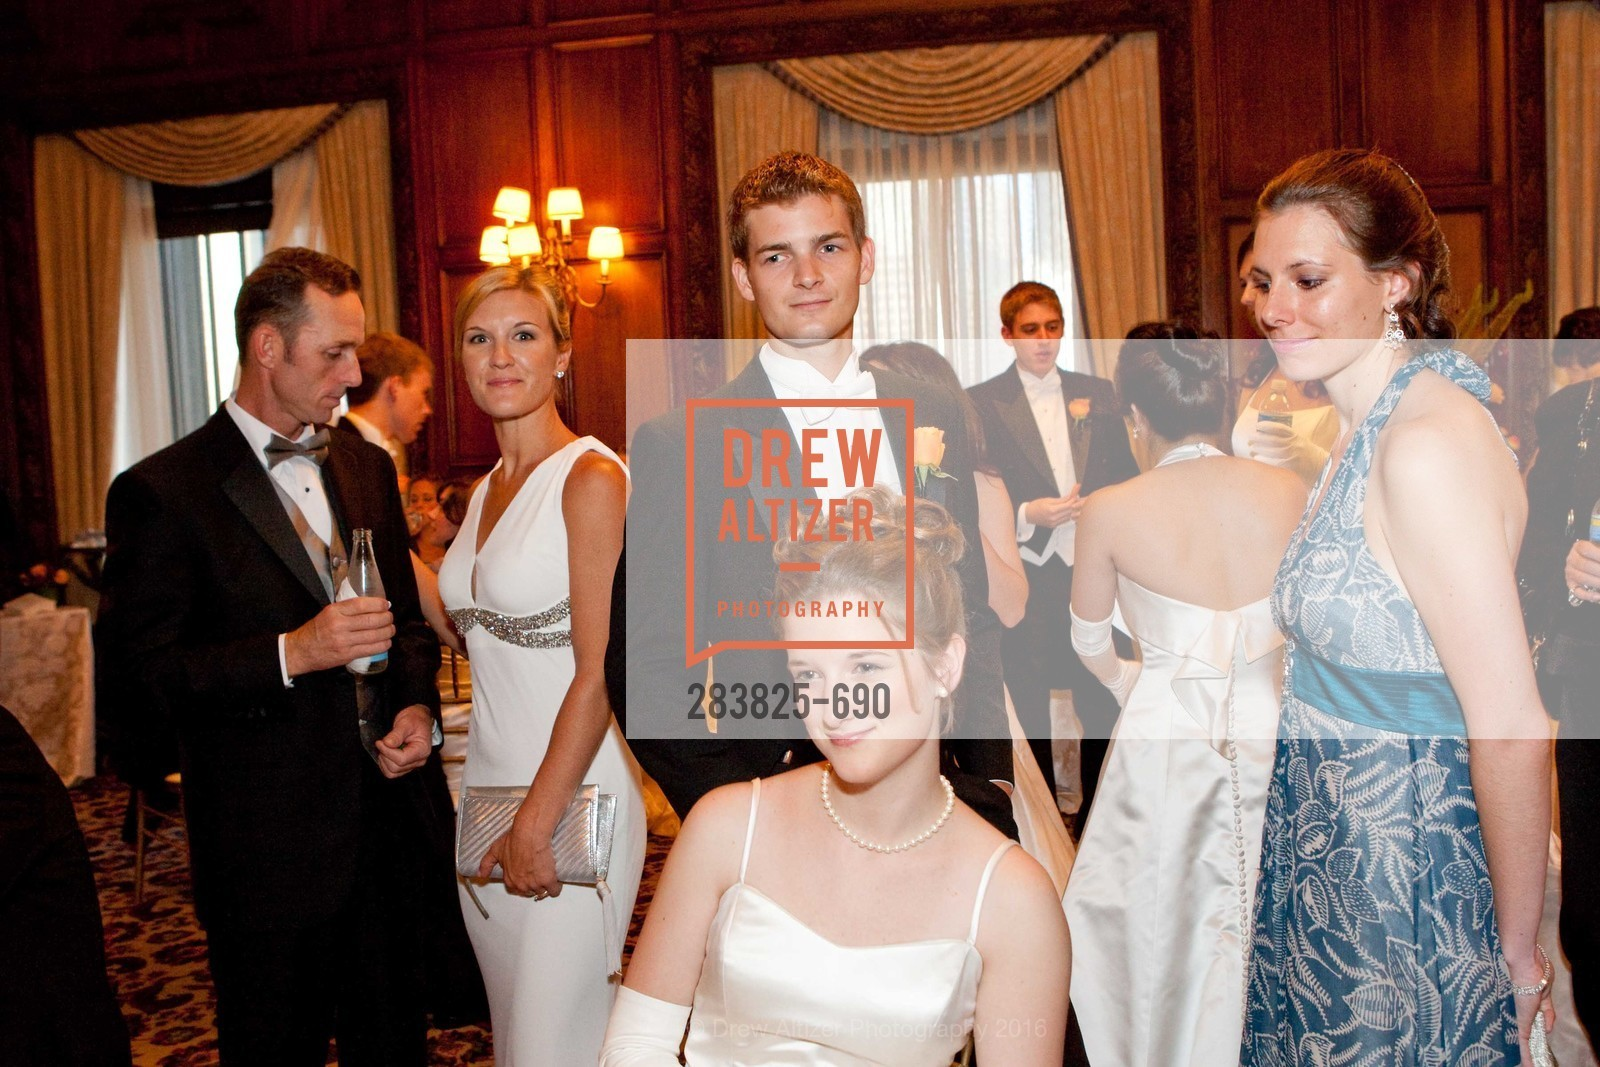 John Coffey, Danielle Malott, Morgan Malott, Mark Malott, Jessica Hollenbacher, 2009 Debutante Ball, Unknown, July 4th, 2008,Drew Altizer, Drew Altizer Photography, full-service agency, private events, San Francisco photographer, photographer california